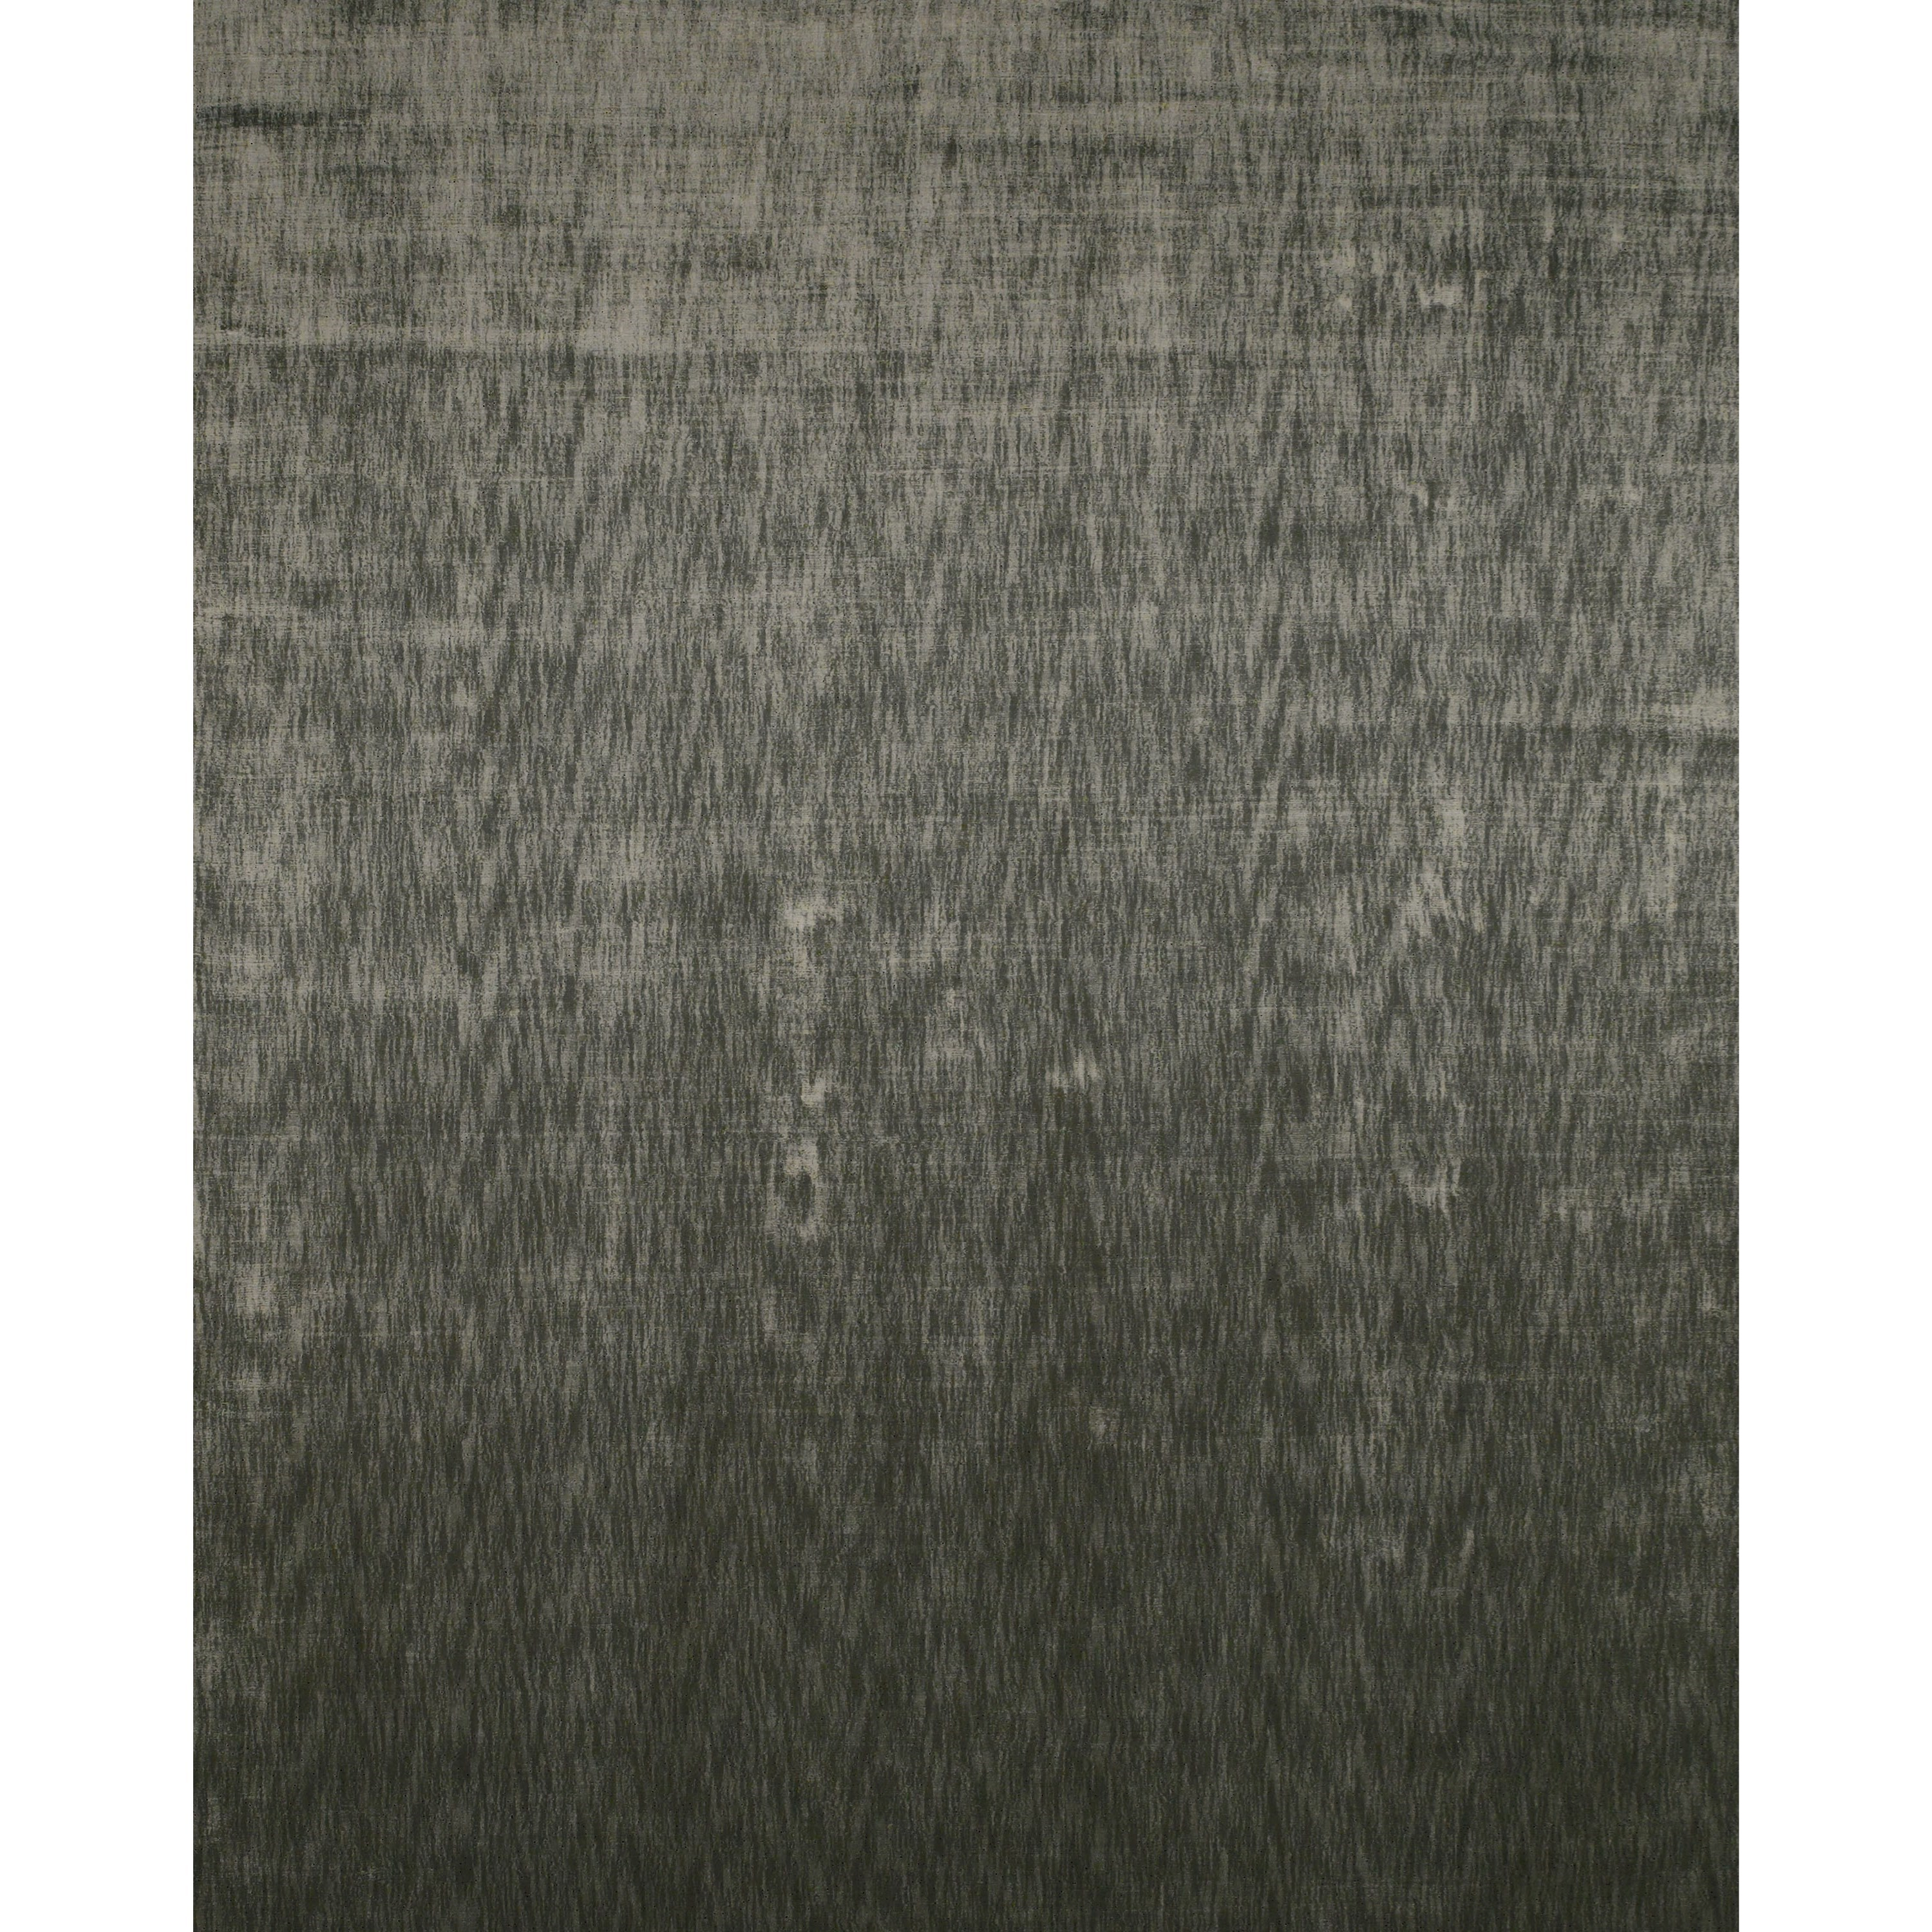 Marlowe Smoke 4' x 6' Area Rug by Feizy Rugs at Sprintz Furniture